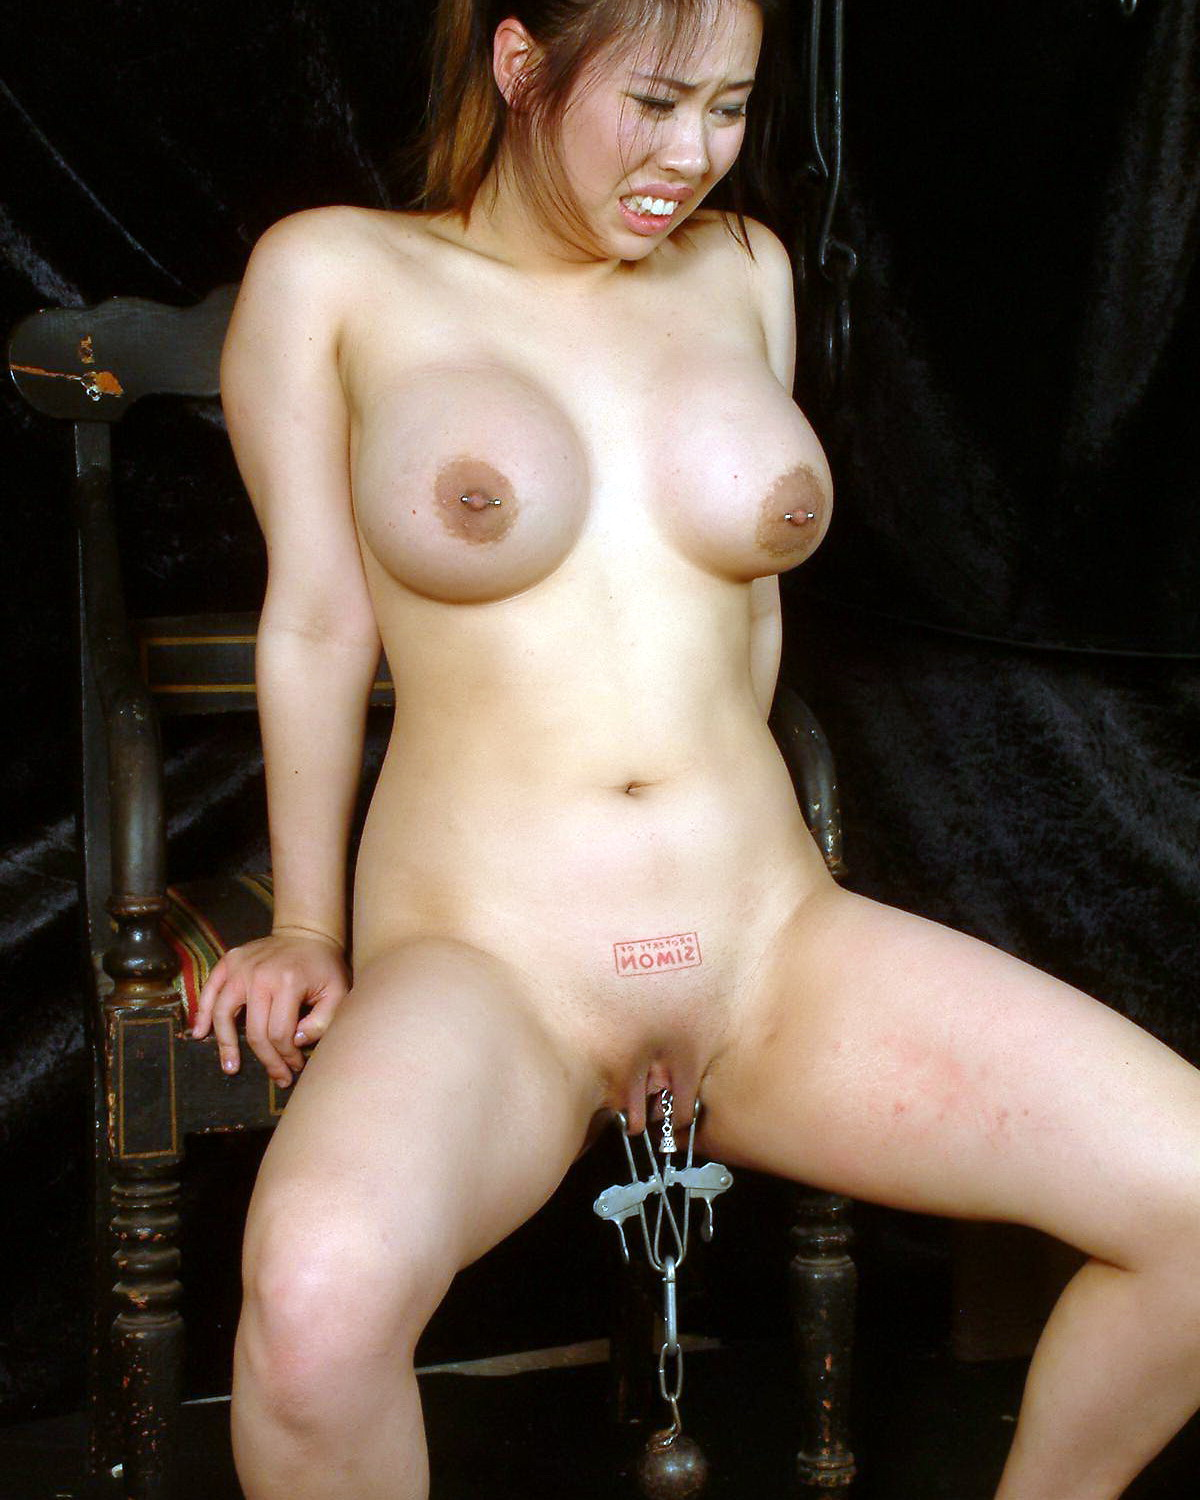 Bdsm xxx slave girl with massive breasts gets it hard 9